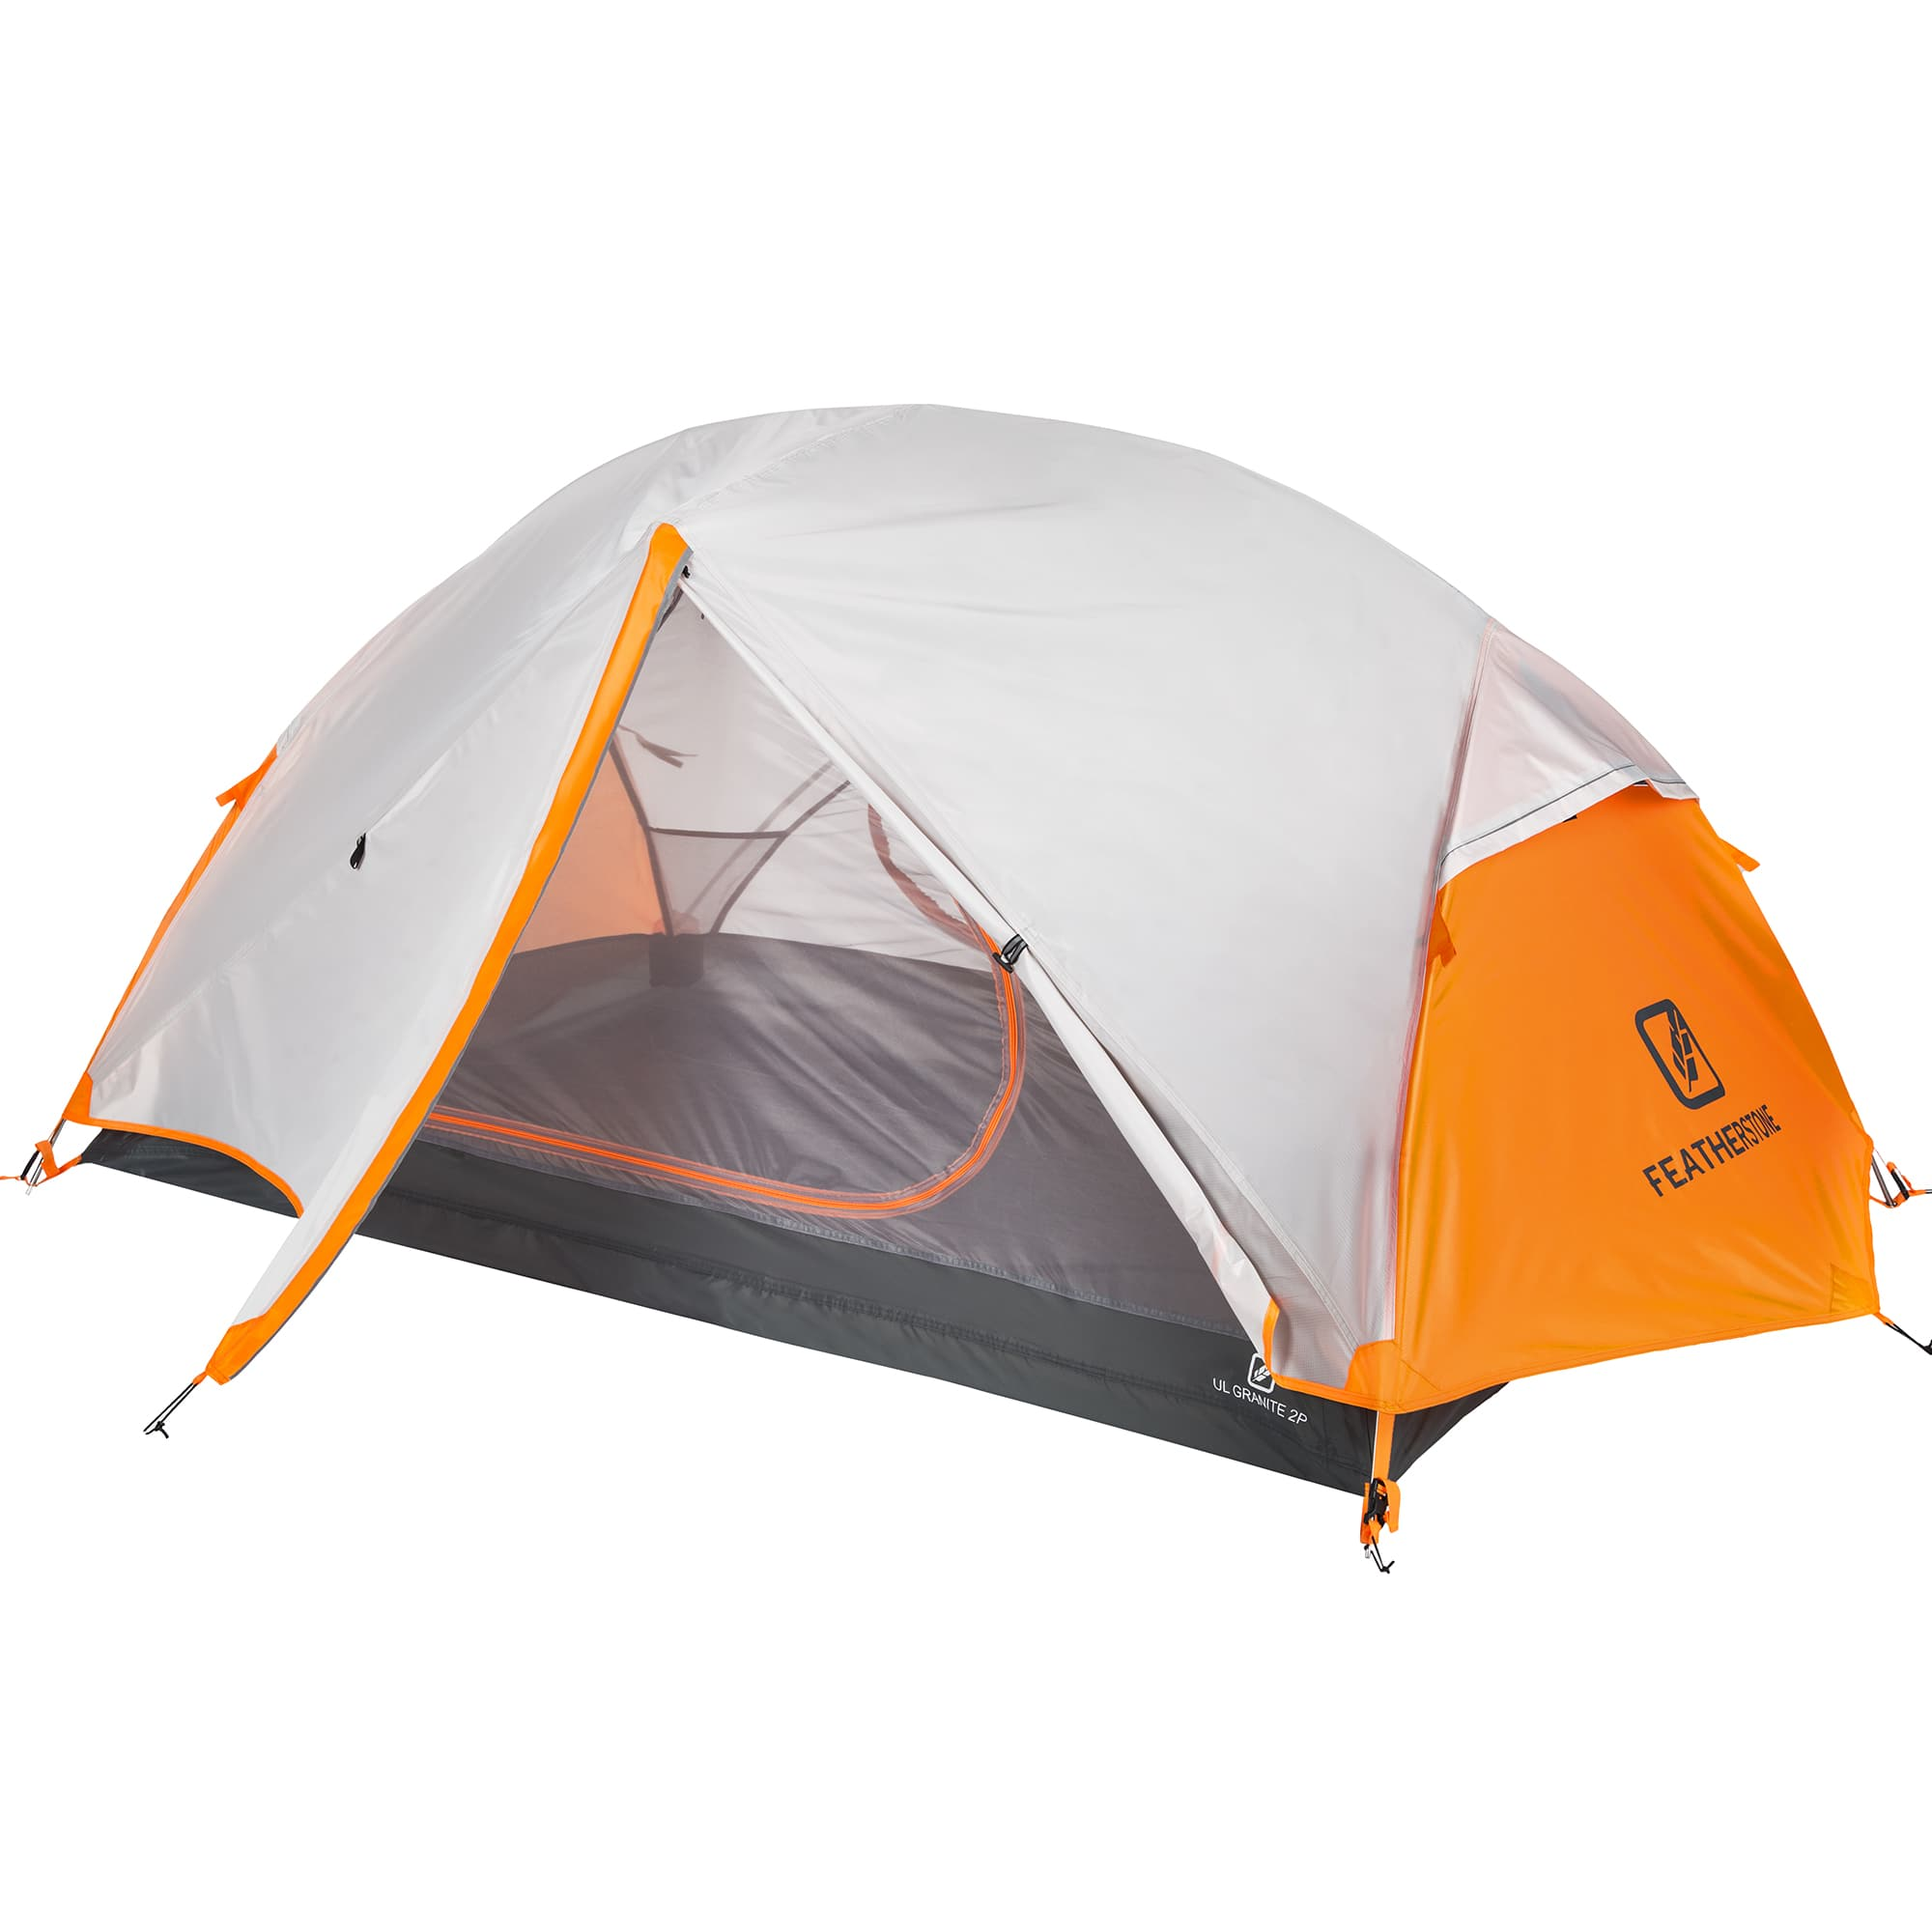 Featherstone Outdoor UL Granite Backpacking Tent (2-Person, 3-Season) $54 + Free Shipping w/ Amazon Prime